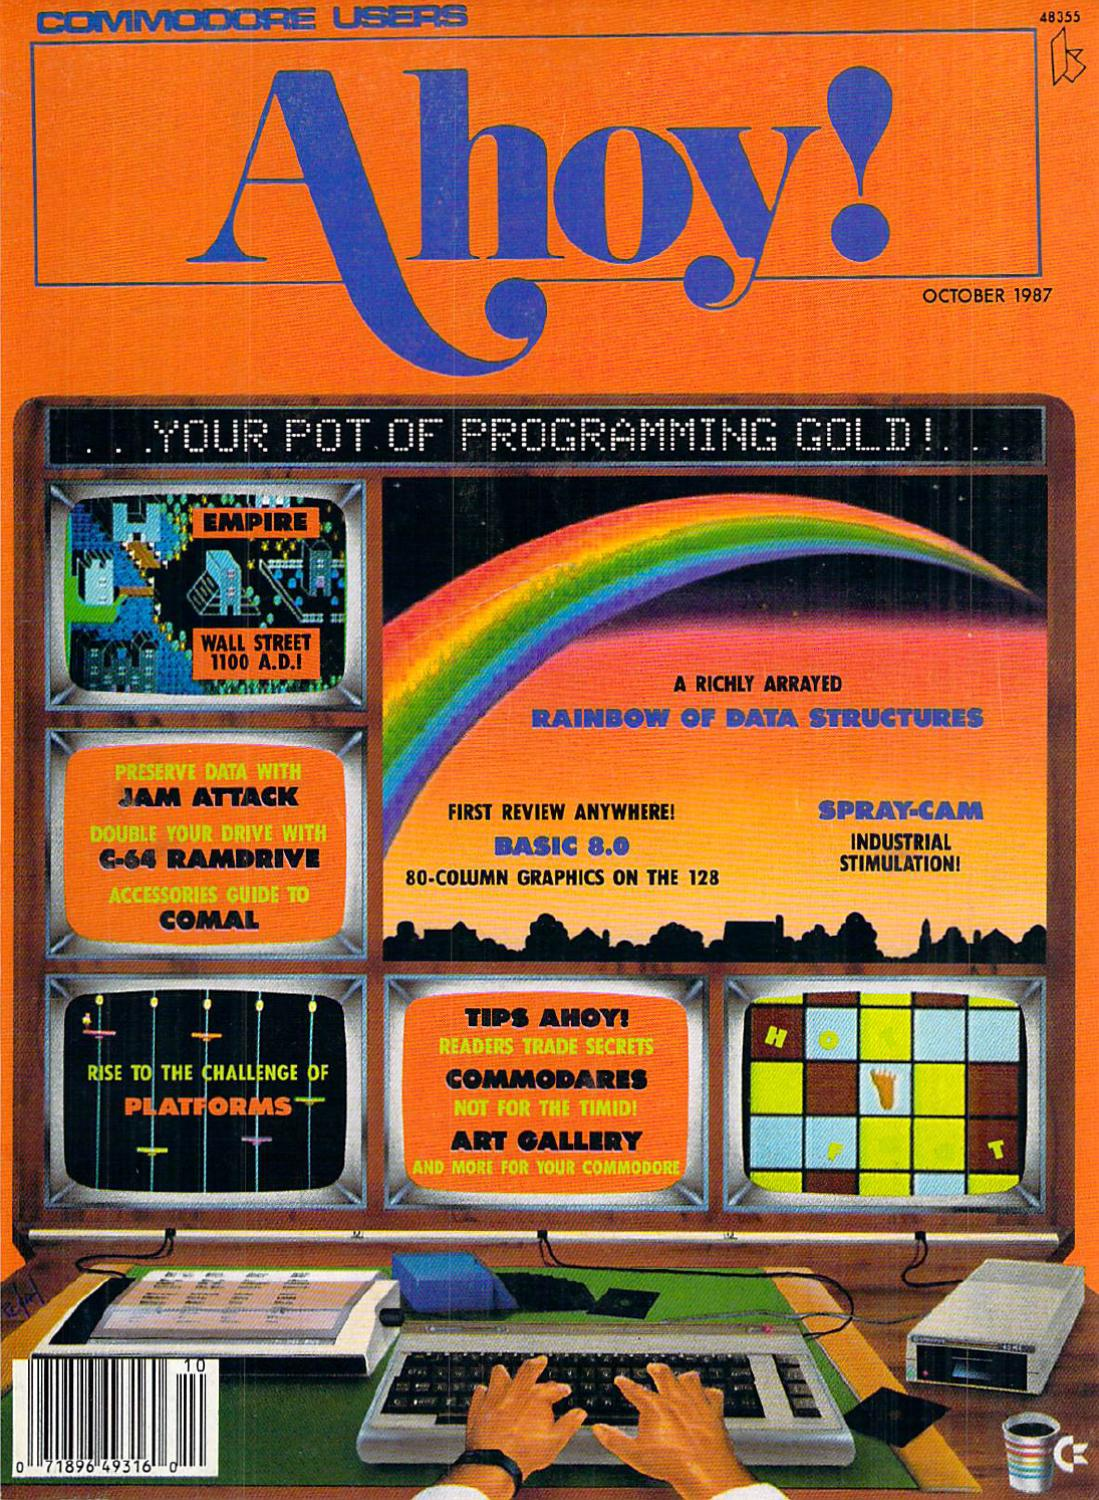 Ahoy_Issue_46_1987_Oct by Zetmoon - issuu